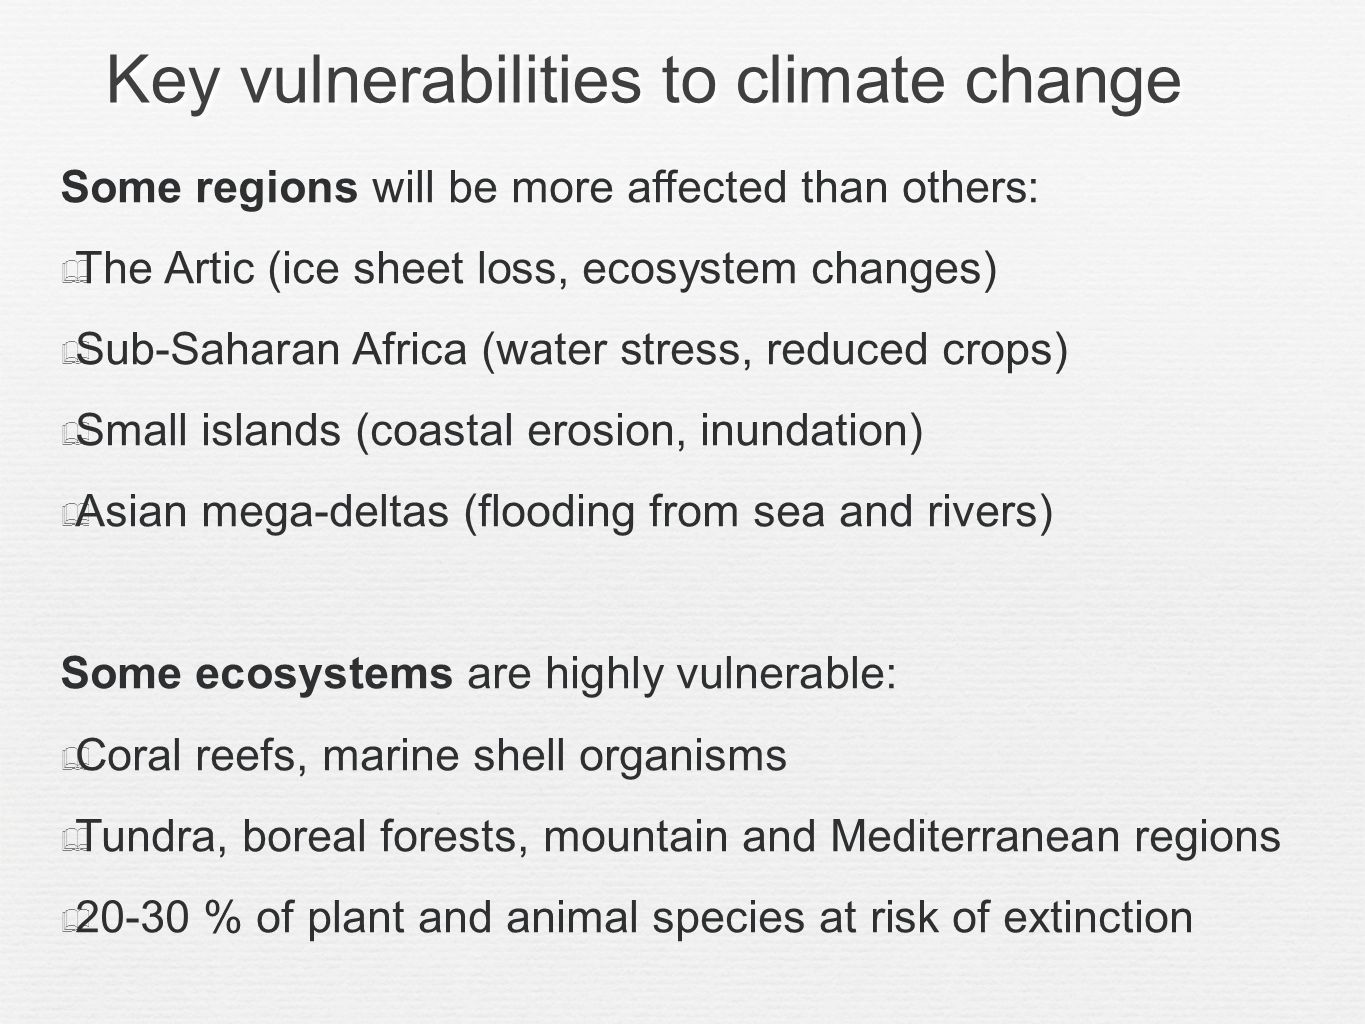 Key vulnerabilities to climate change Some regions will be more affected than others: The Artic (ice sheet loss, ecosystem changes) Sub-Saharan Africa (water stress, reduced crops) Small islands (coastal erosion, inundation) Asian mega-deltas (flooding from sea and rivers) Some ecosystems are highly vulnerable: Coral reefs, marine shell organisms Tundra, boreal forests, mountain and Mediterranean regions 20-30 % of plant and animal species at risk of extinction